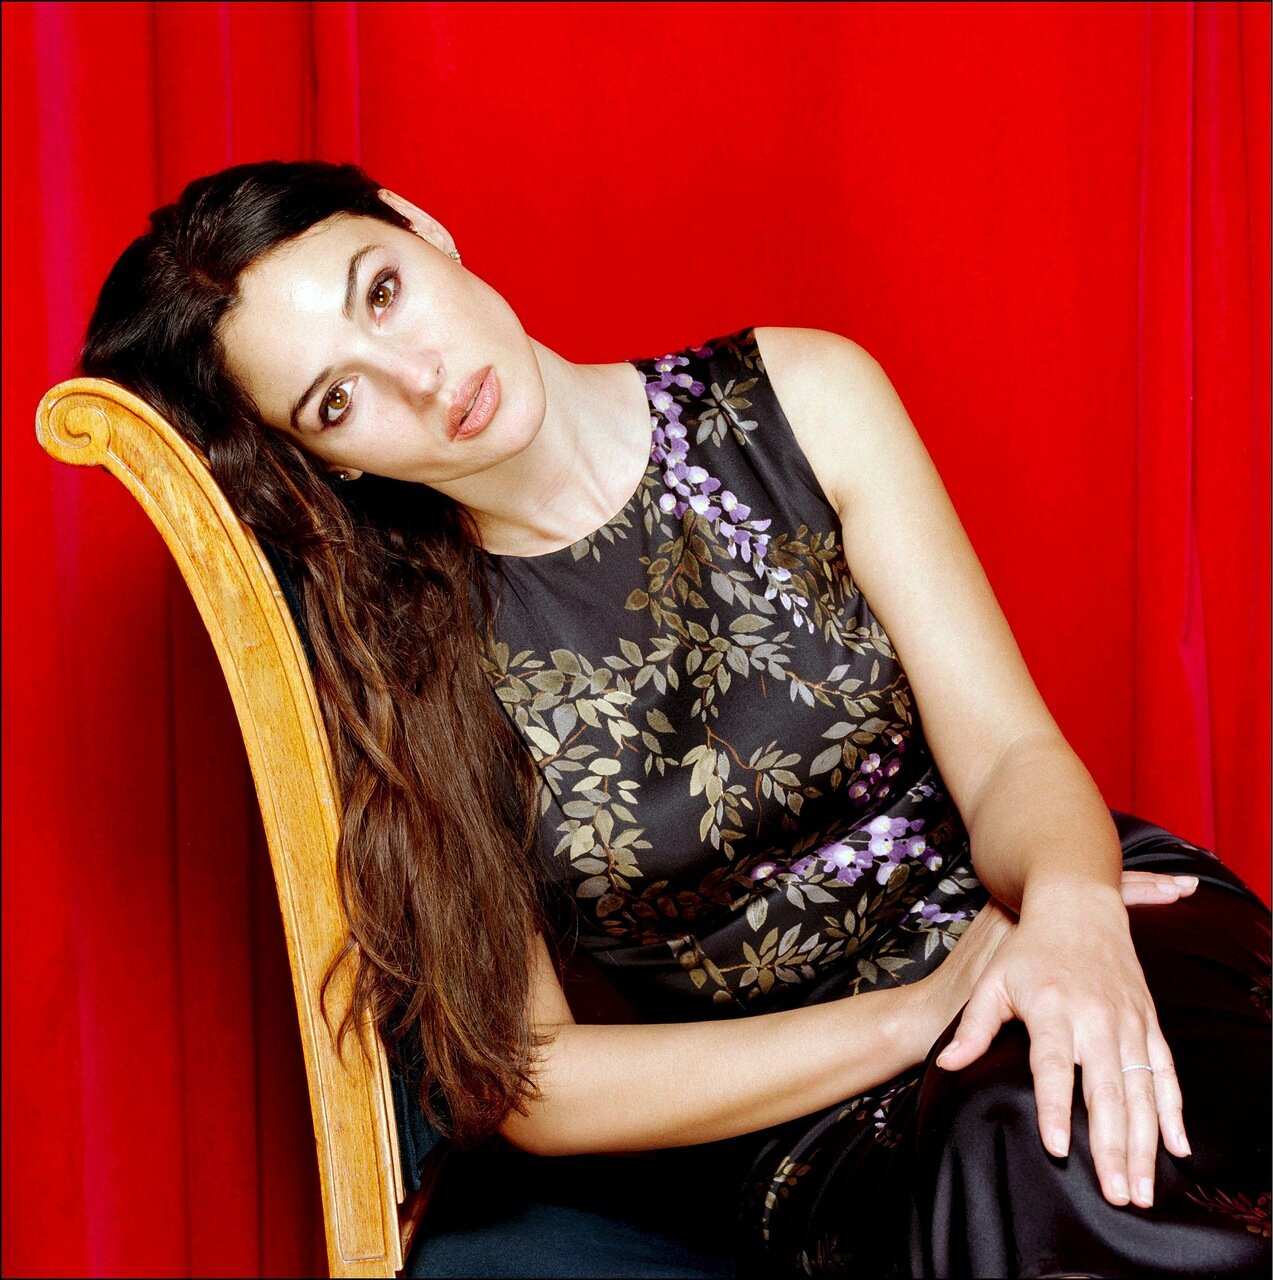 Italian film actress Monica Bellucci who is currenly starring in the action film 'Tears Of The Sun' and the controversial 'Irreversible'. Now apart from her long term spouse Vincent Cassel following their work together on Irreversible, the 5ft 9 raven hai